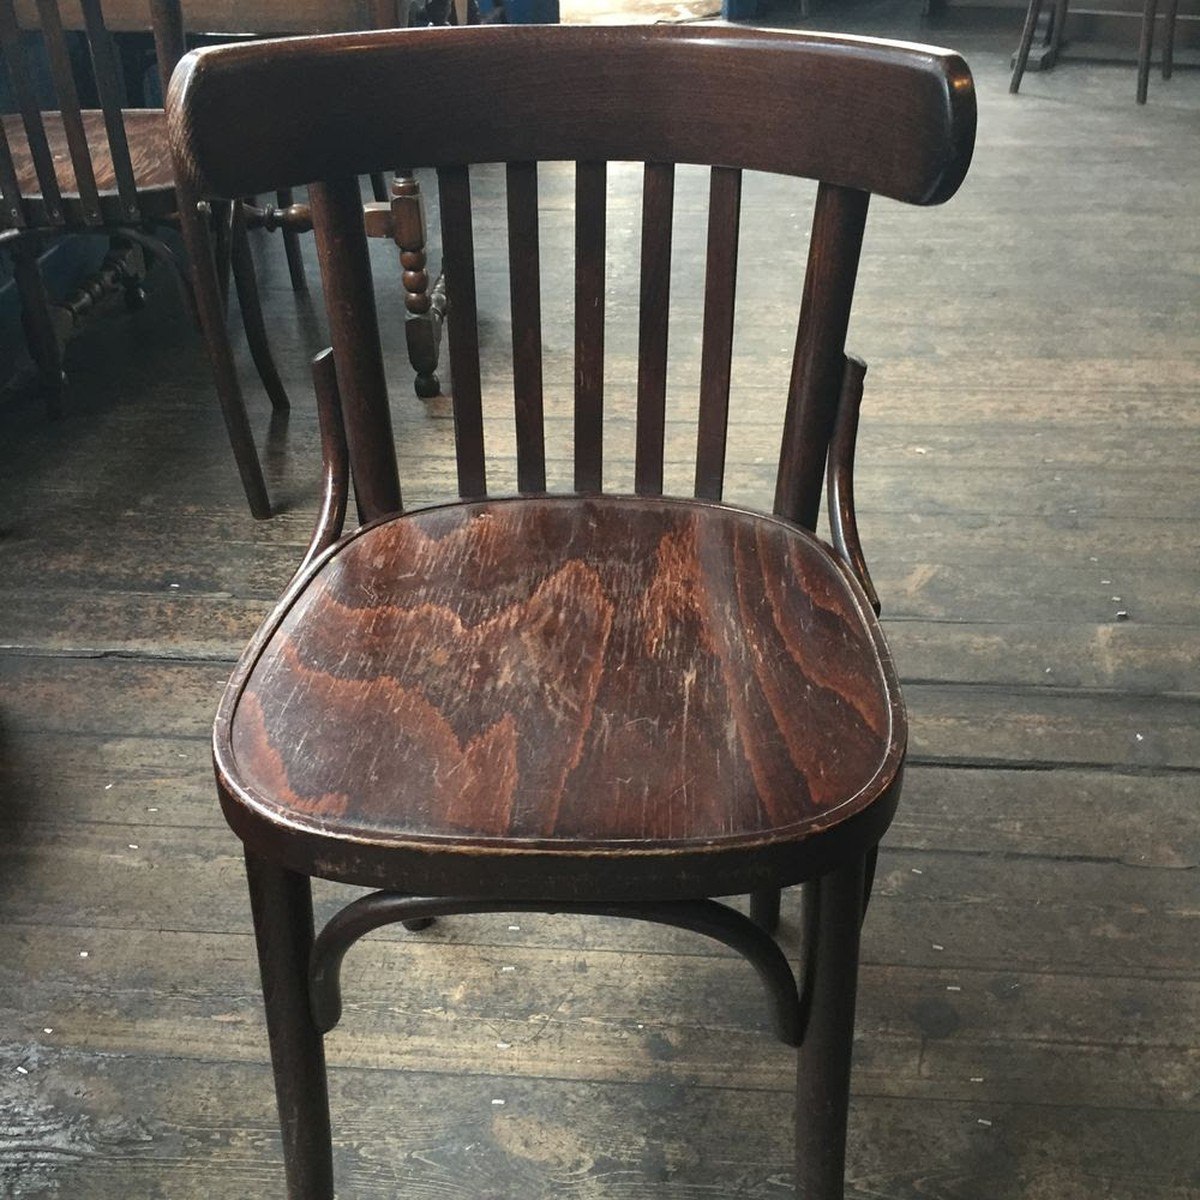 Secondhand Pub Equipment Chairs Various Wooden Pub